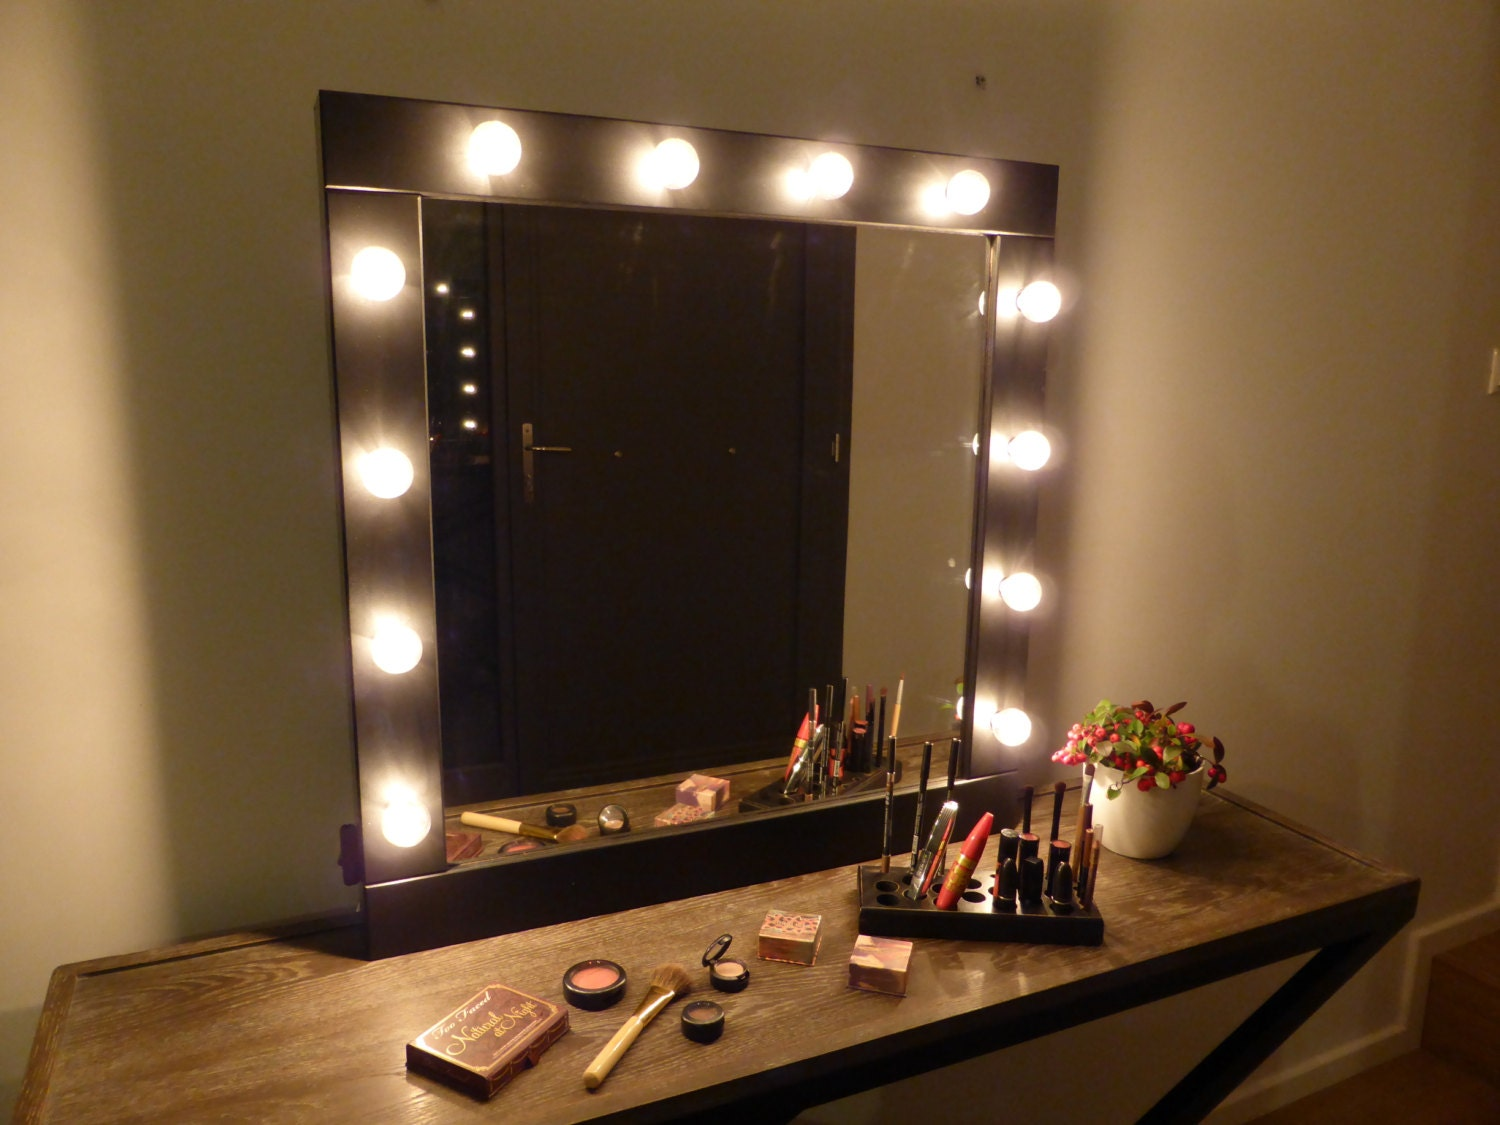 Diy Makeup Vanity Mirror. 🔎zoom Diy Makeup Vanity Mirror A